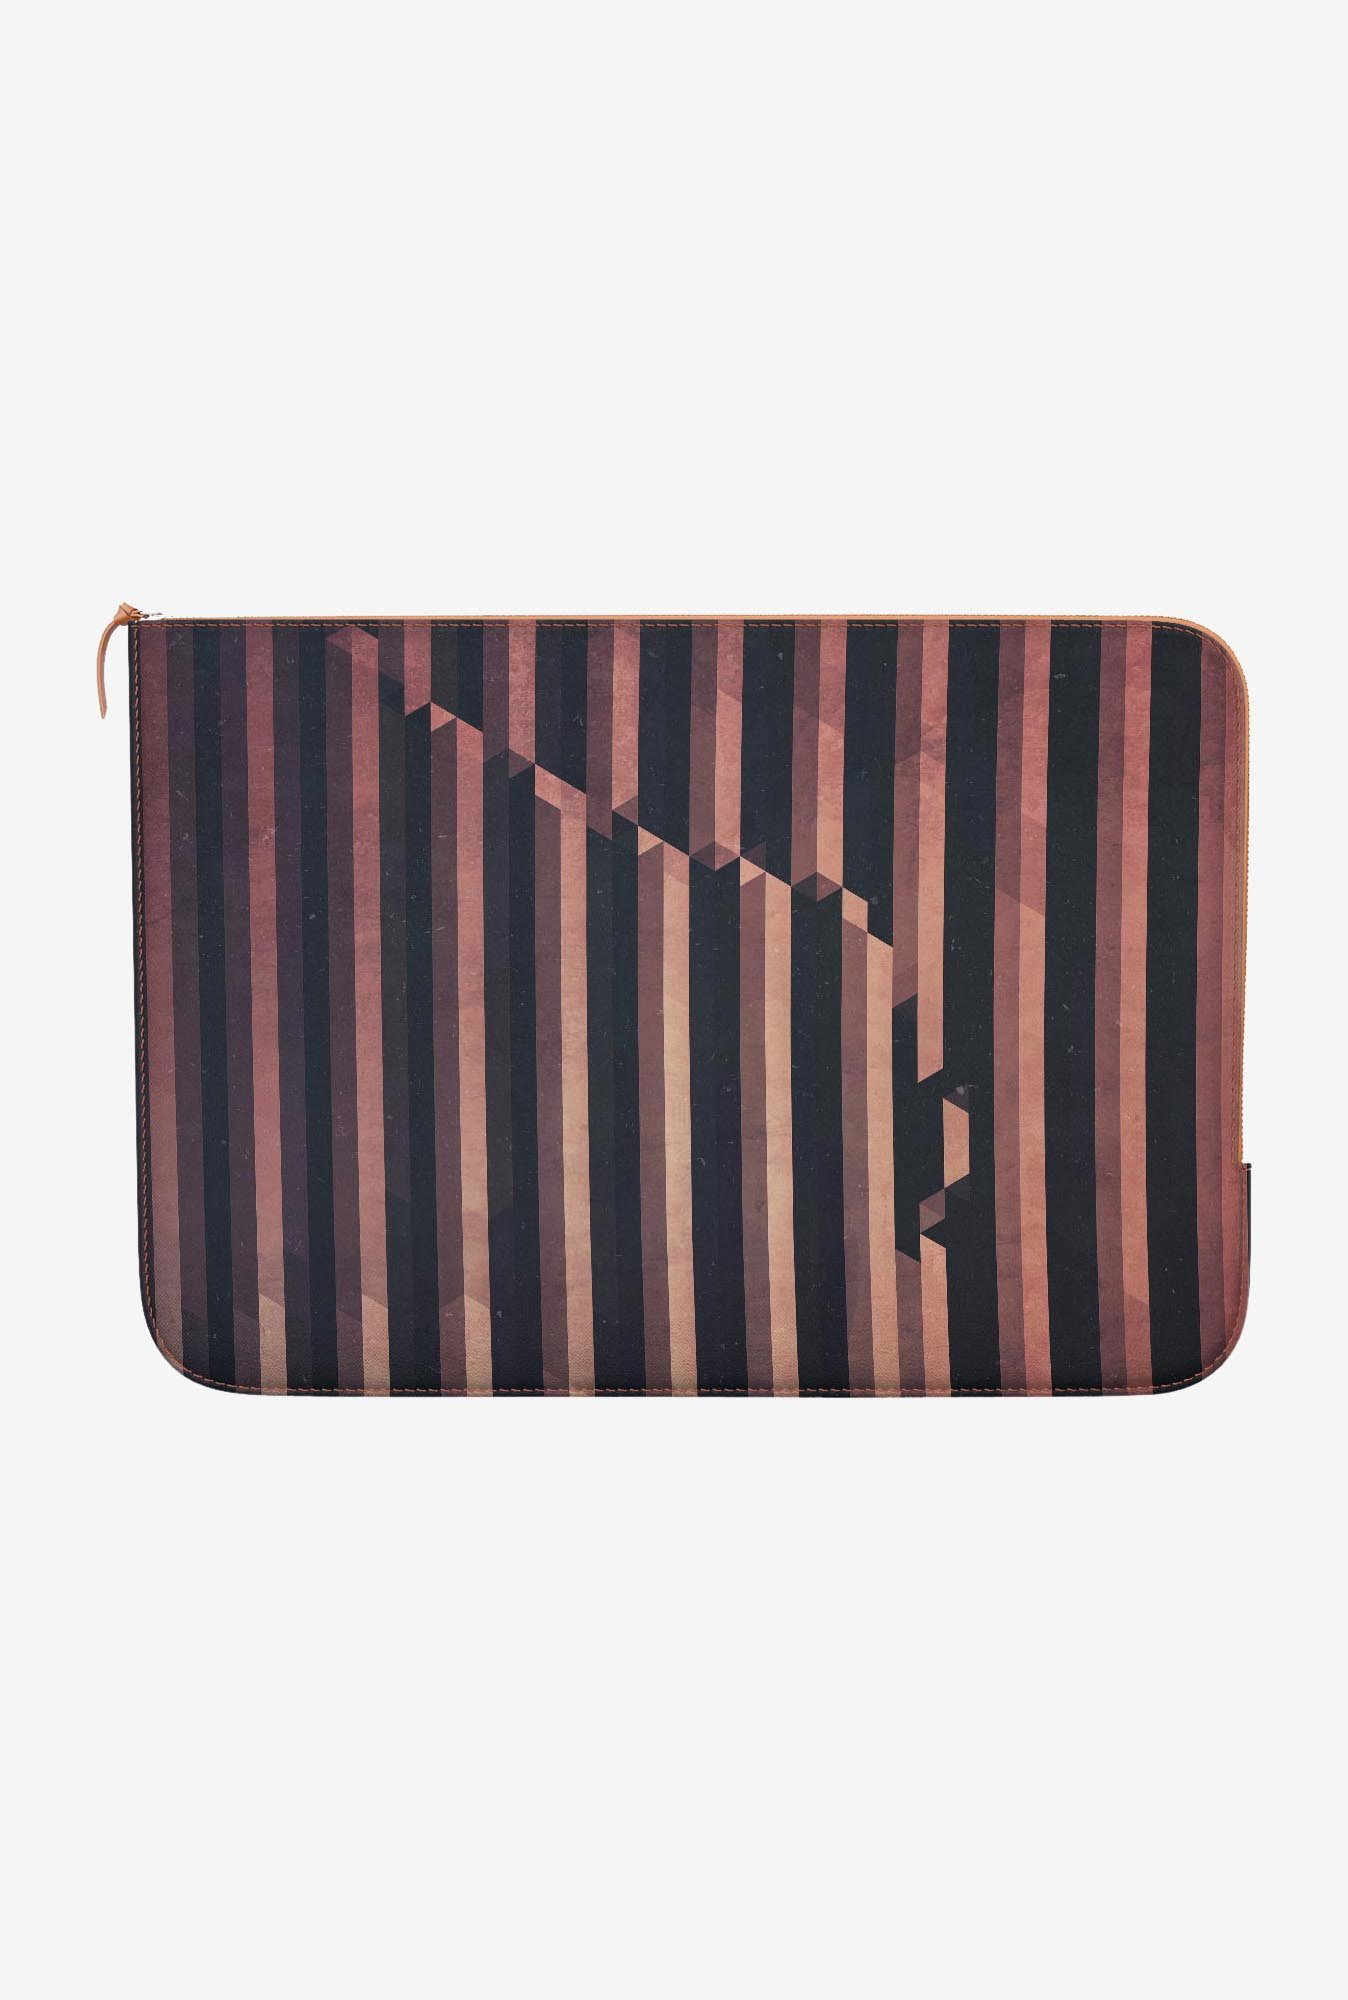 "DailyObjects Cyt Twwr Macbook Air 13"" Zippered Sleeve"